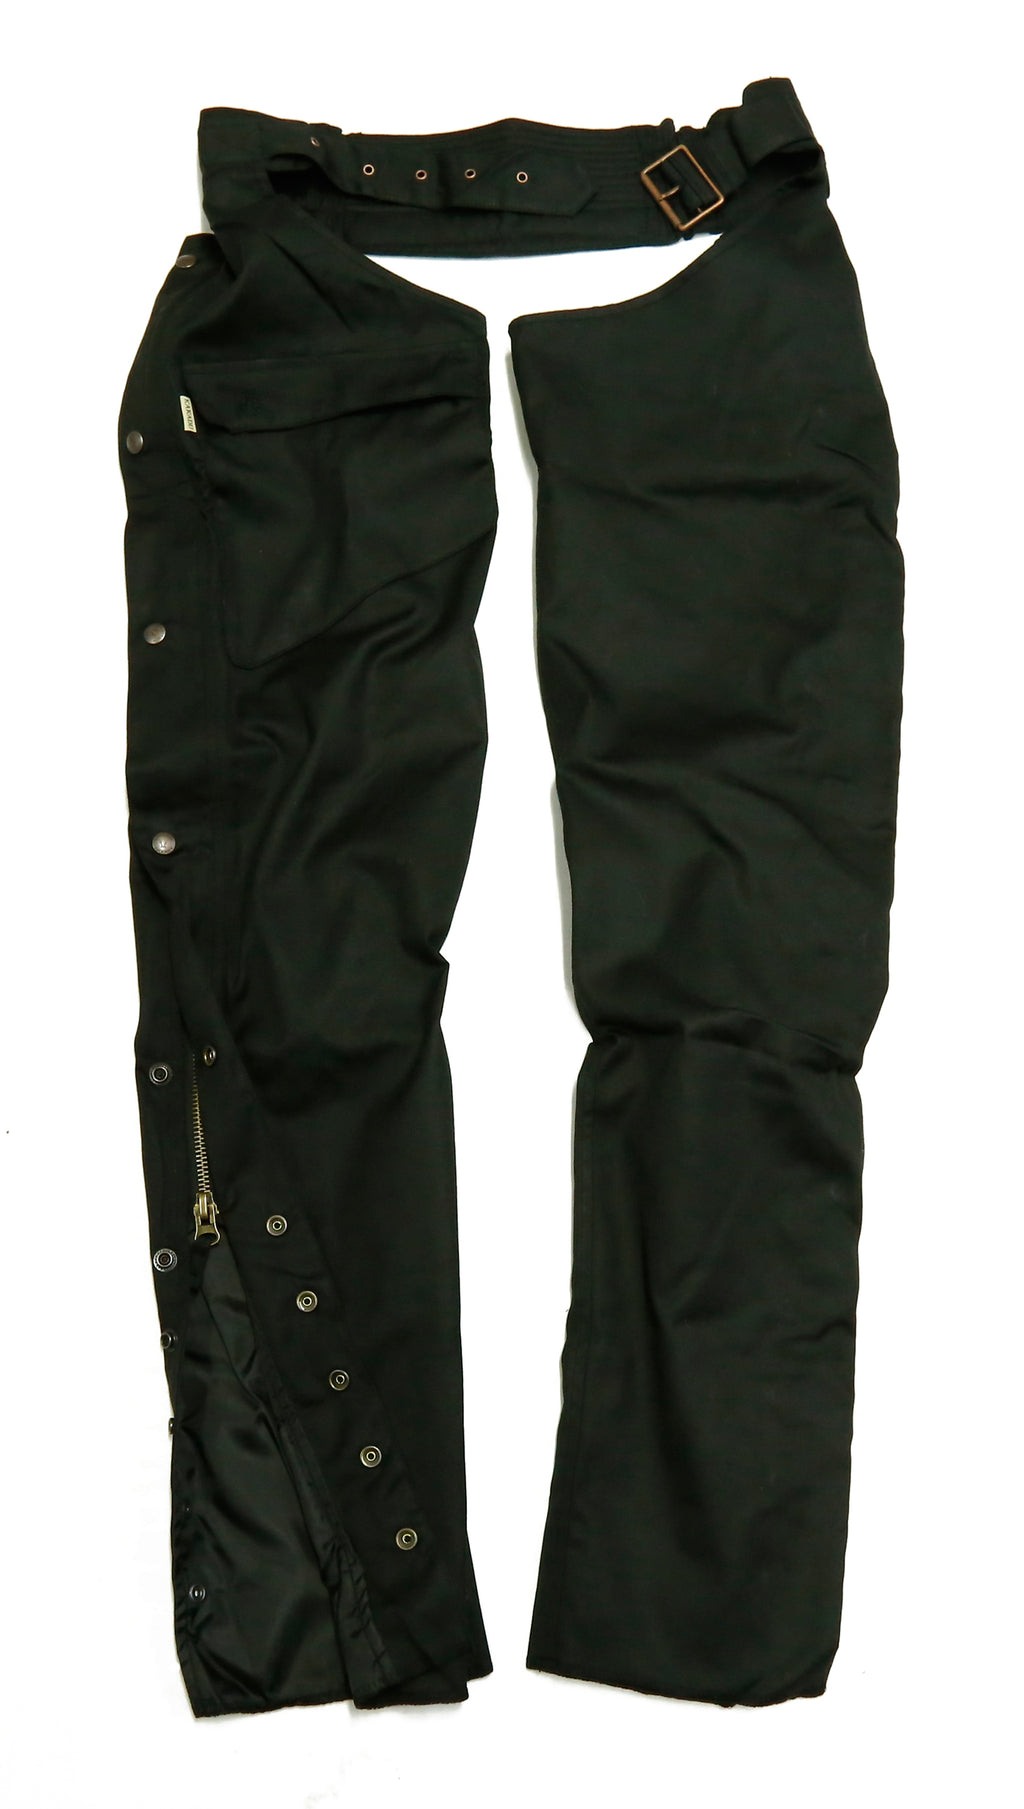 Biker rider | Cover chaps fan water-repellent and robust in black - OUT OF AUSTRALIA | Kakadu Traders Australia